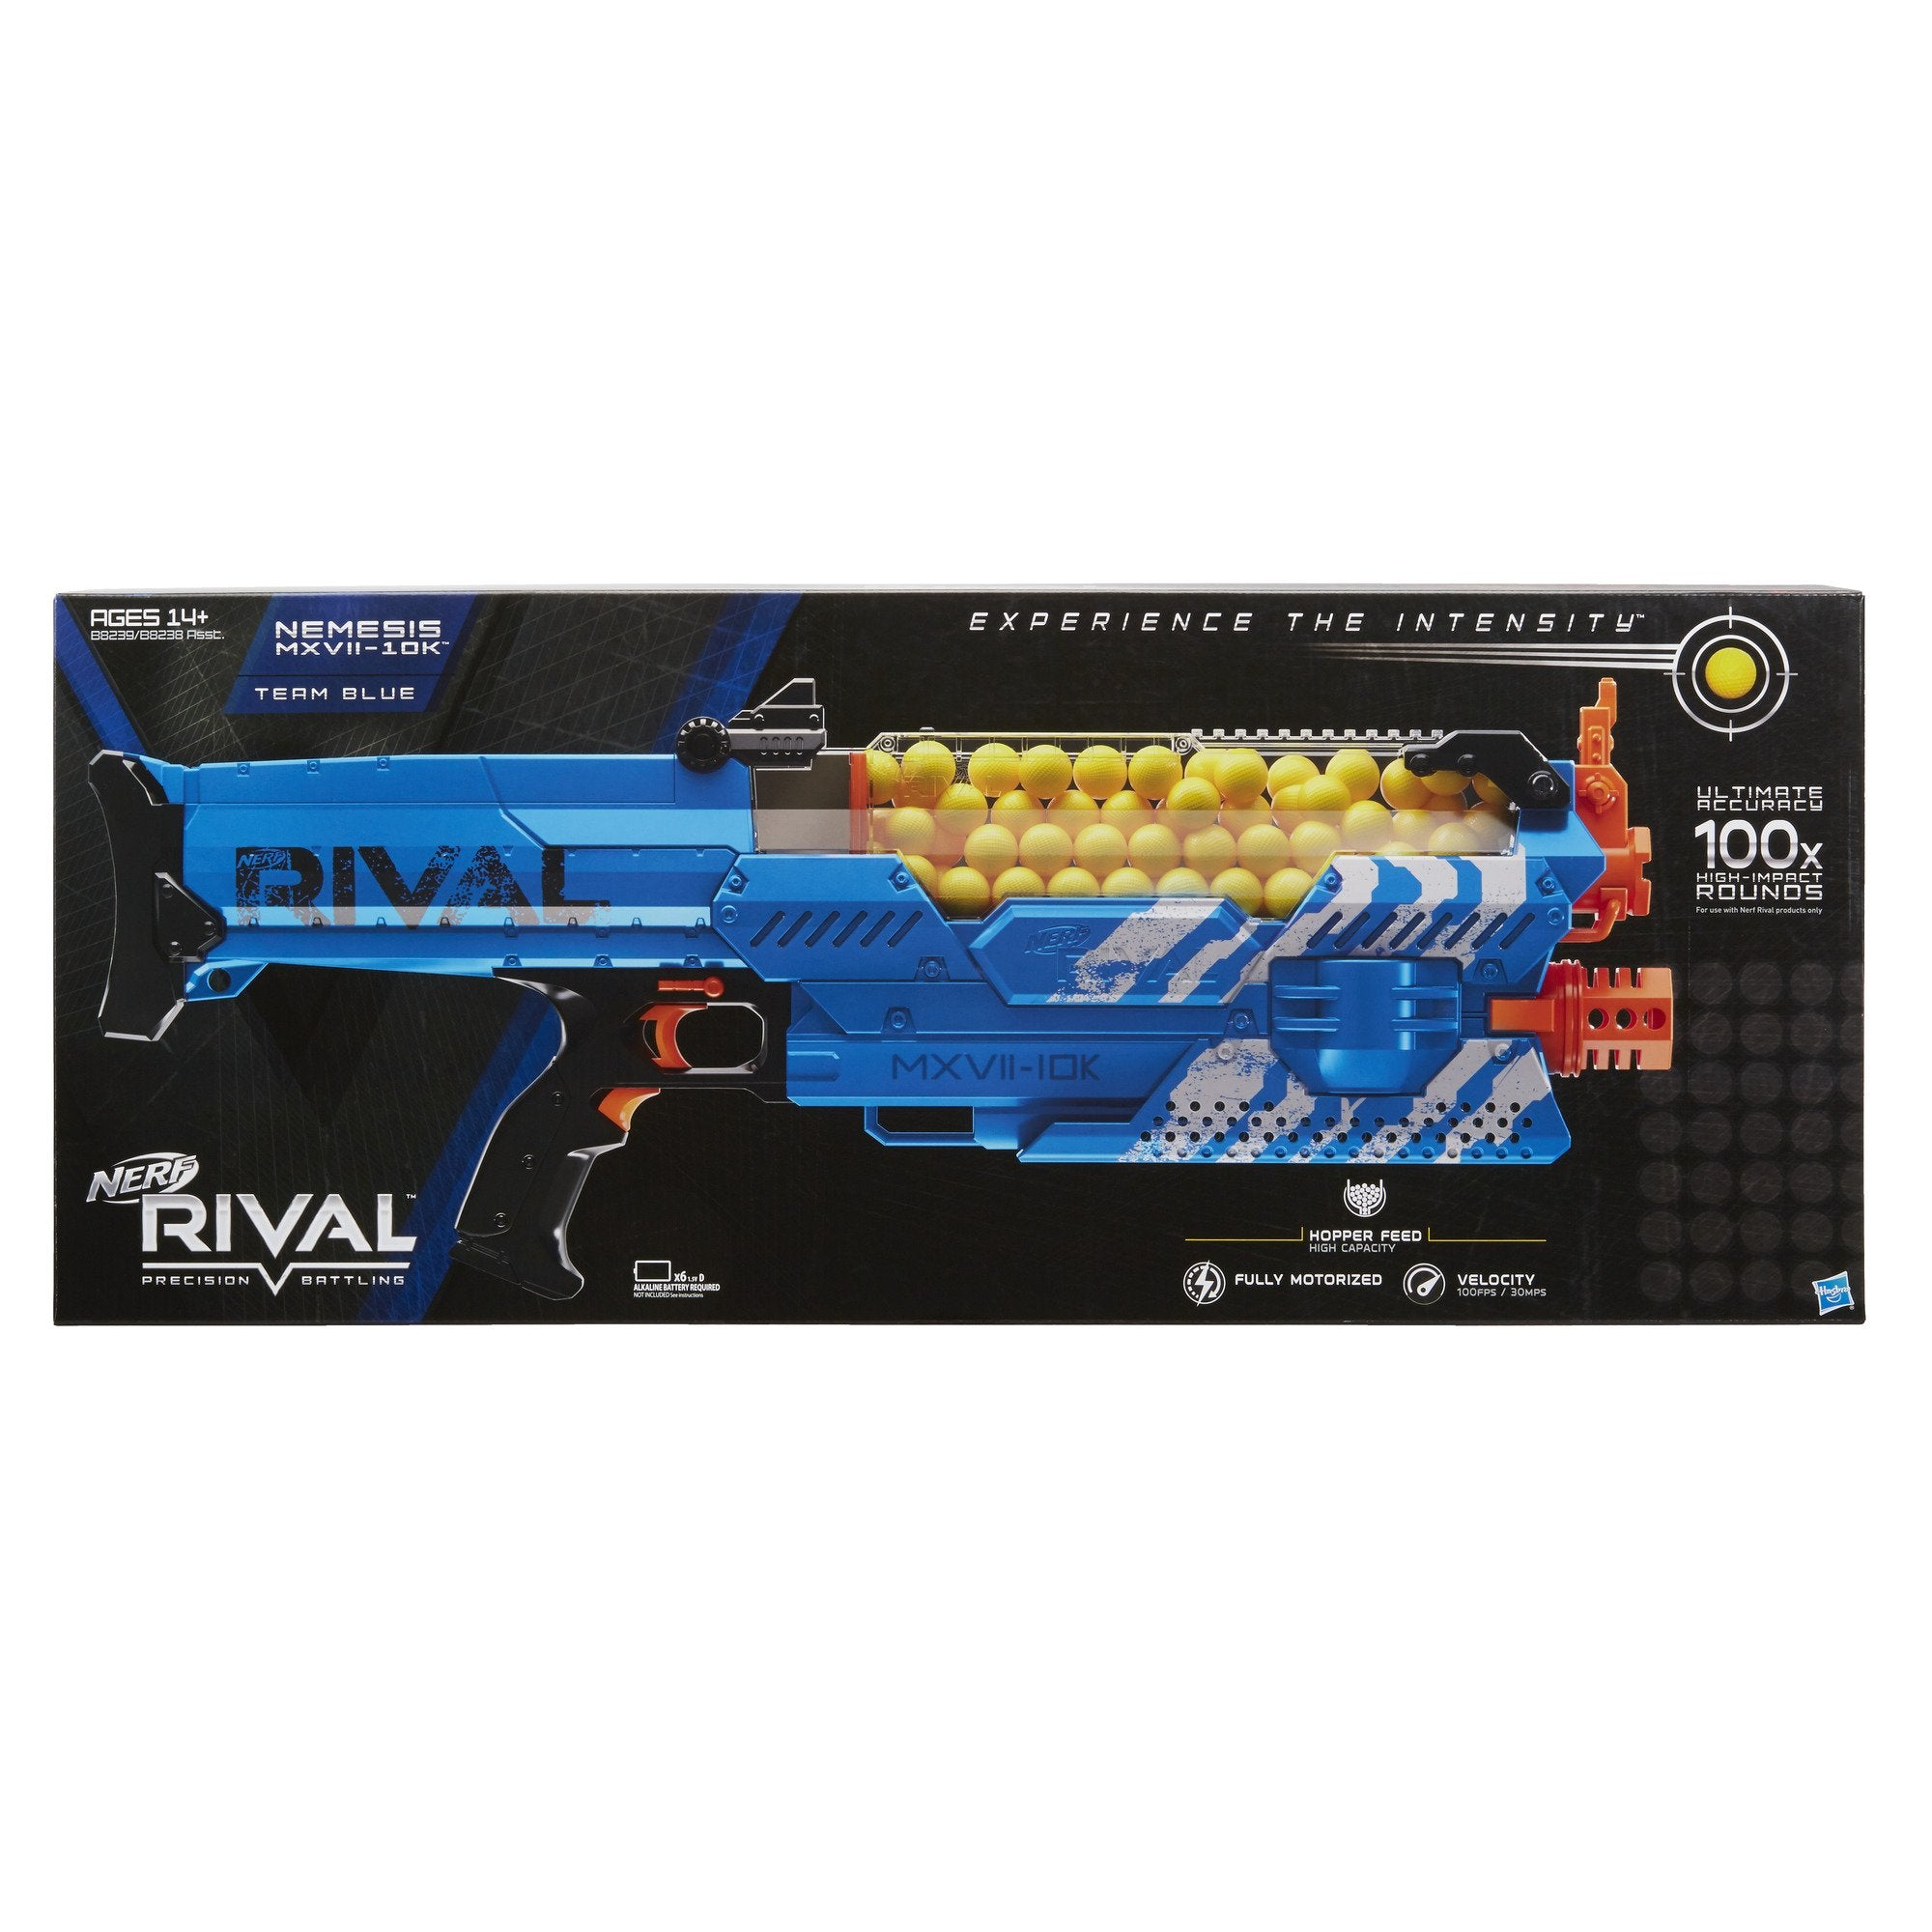 Nerf Rival Nemesis MXVII-10K, Blue (Amazon Exclusive), Standard Packaging - wiihuu